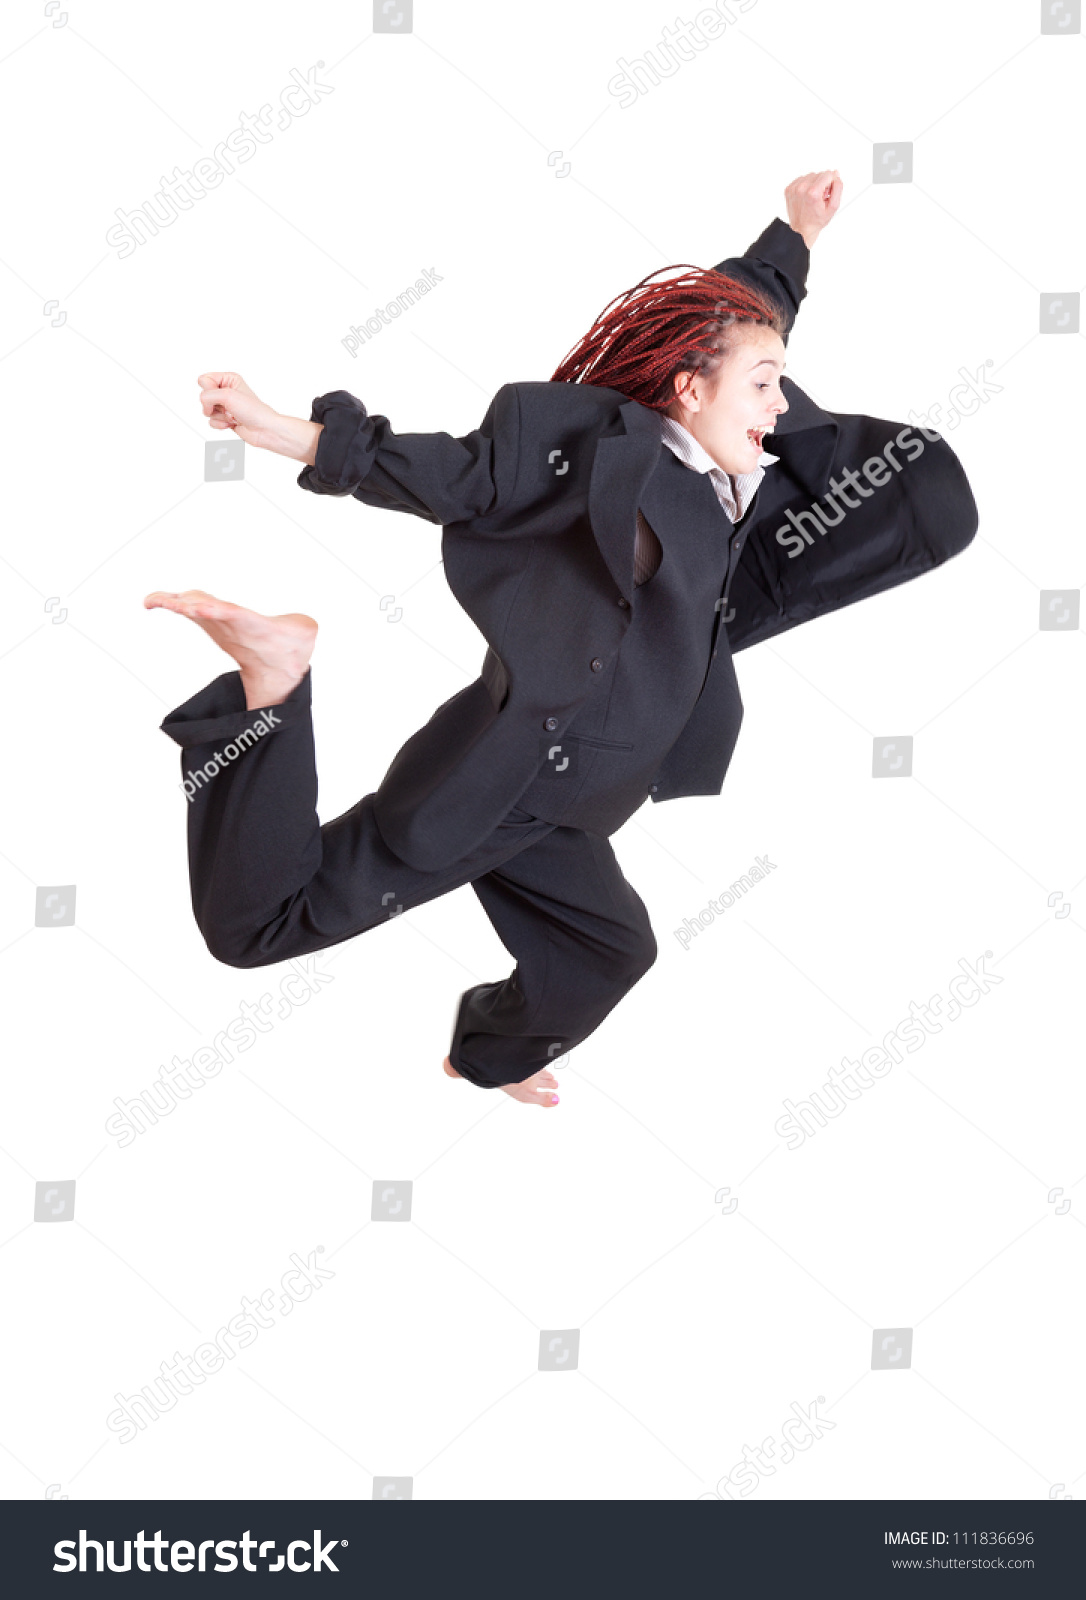 Background image too big - Excited Young Woman In Too Big Suit Jumping Or Running Full Length White Background